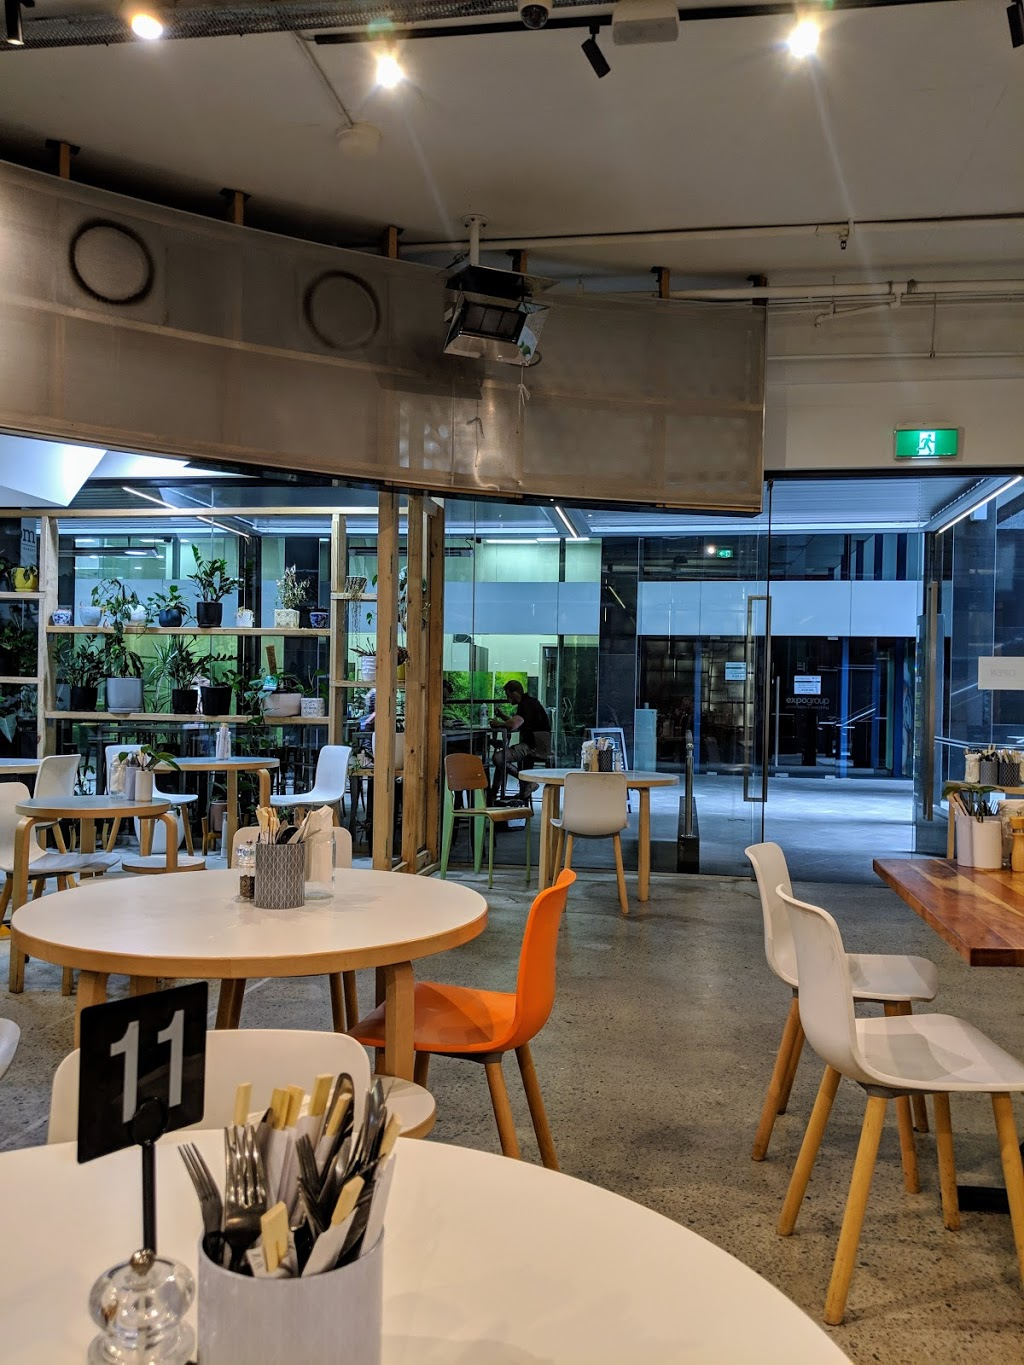 Teom Kitchen + Bakery | cafe | 3/5 Mill St, Perth WA 6000, Australia | 0861615836 OR +61 8 6161 5836